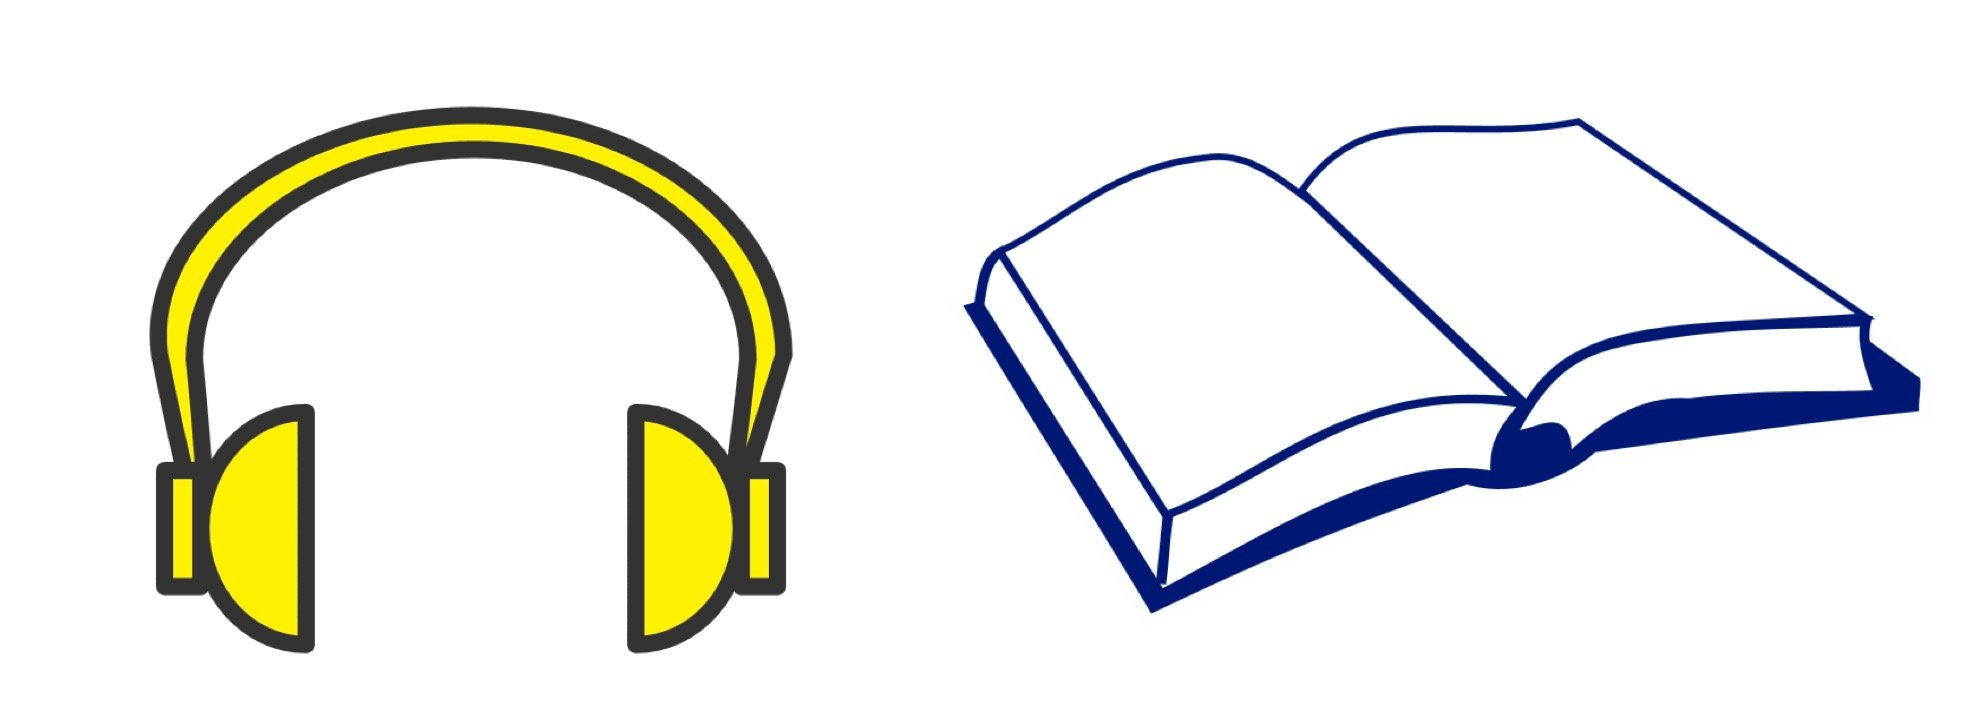 Tips for Engaging with Books – From an Anonymous Adult